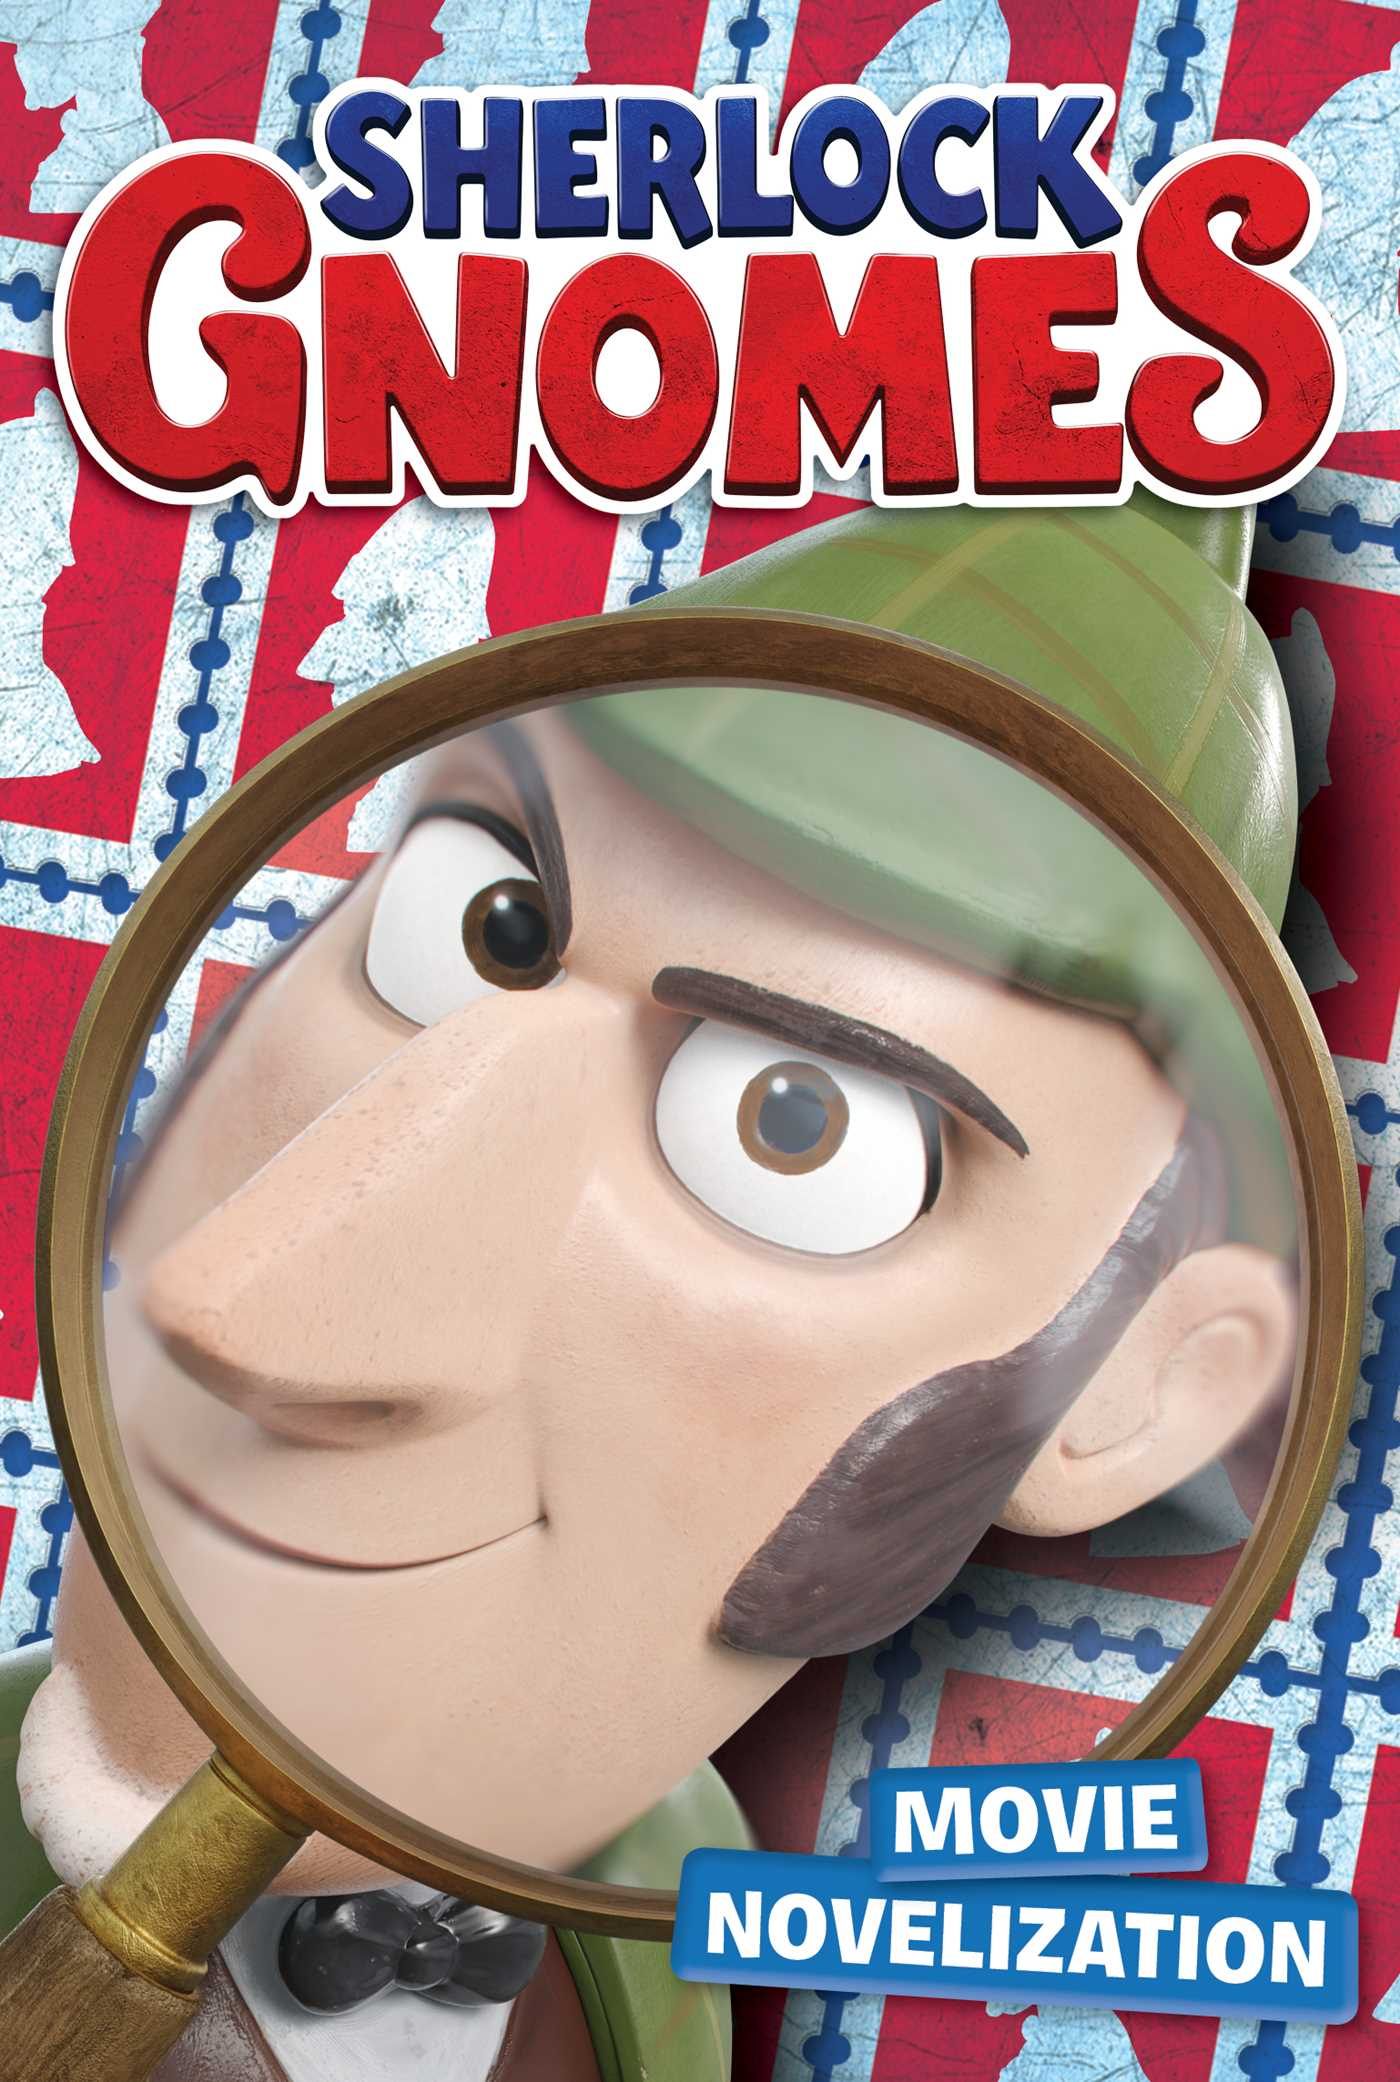 Sherlock gnomes movie novelization 9781534409552 hr